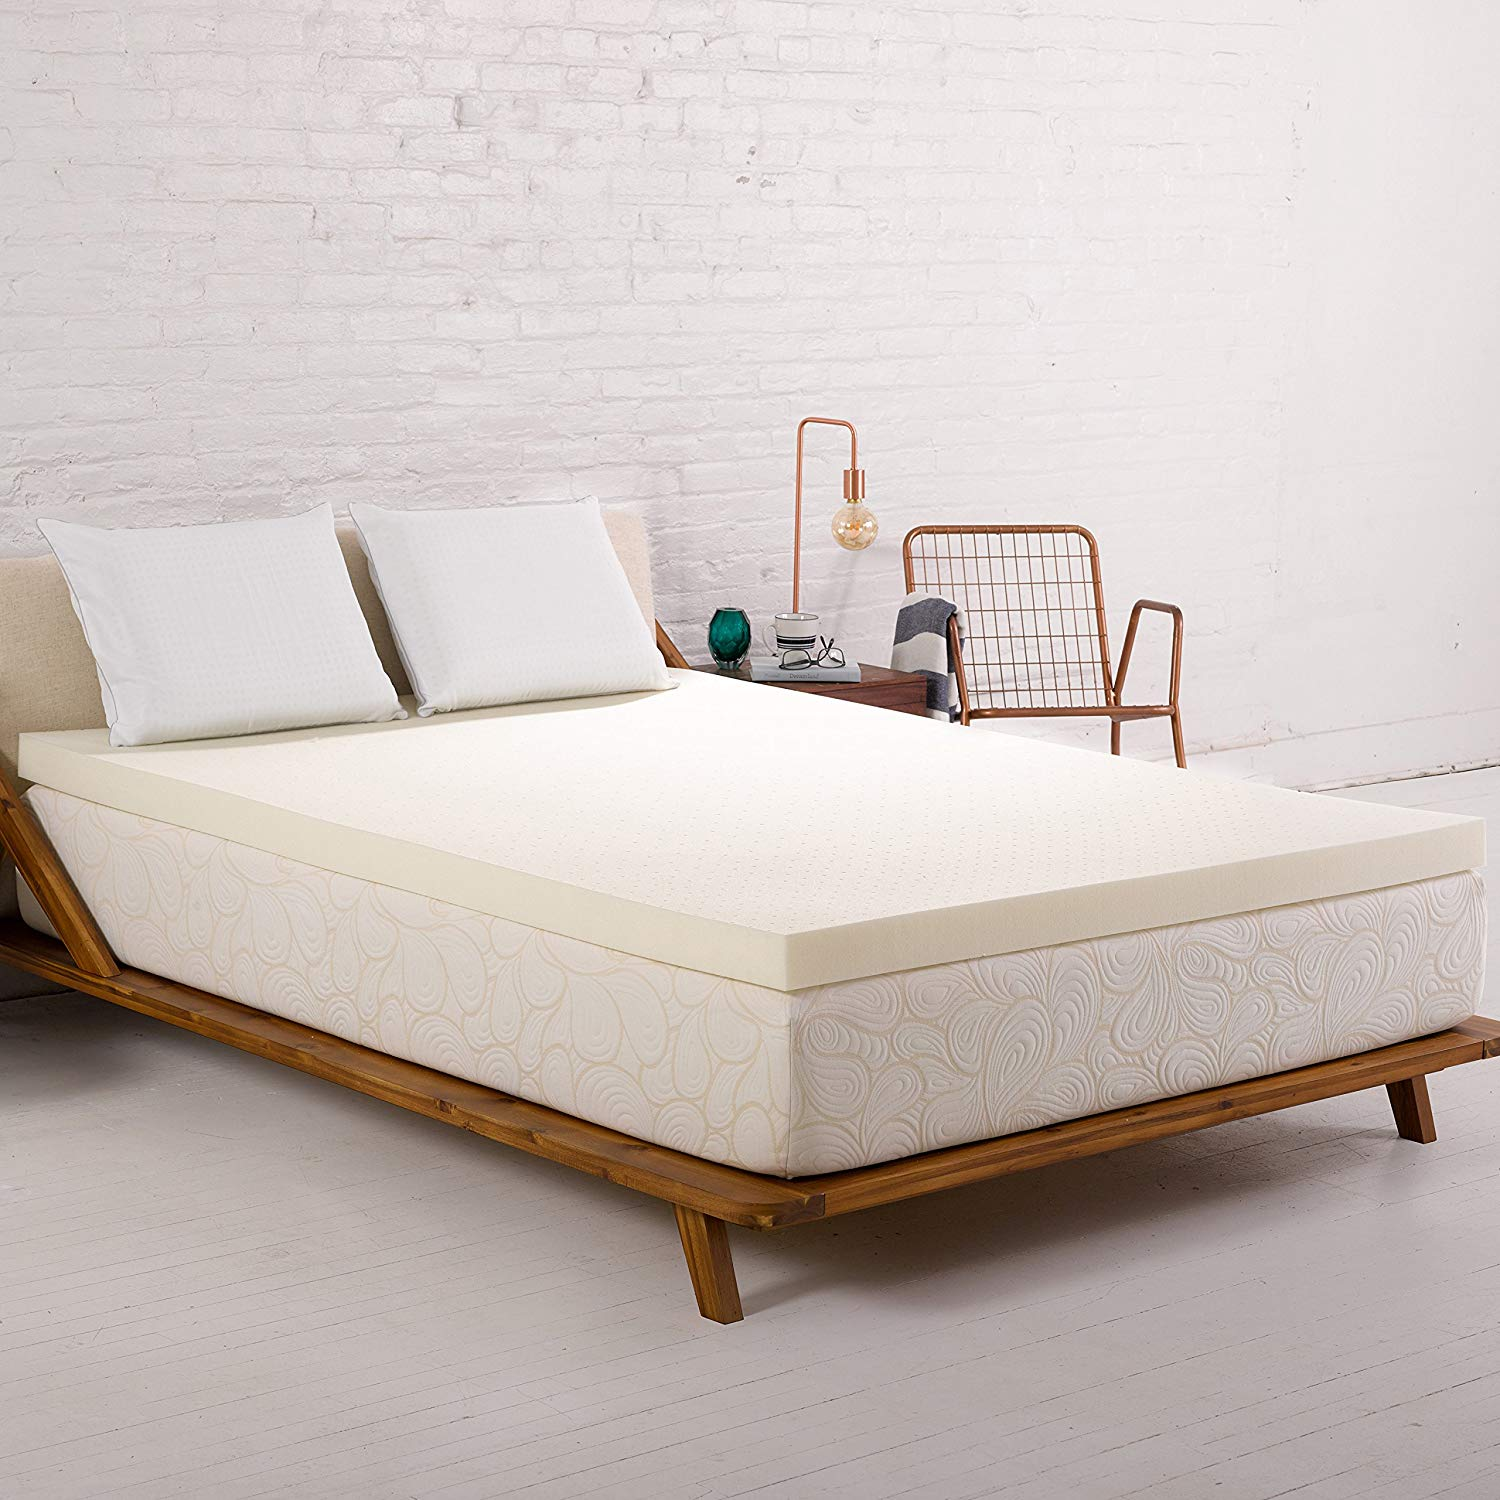 Best Platform Bed Frames for Queen Beds and Other Sizes